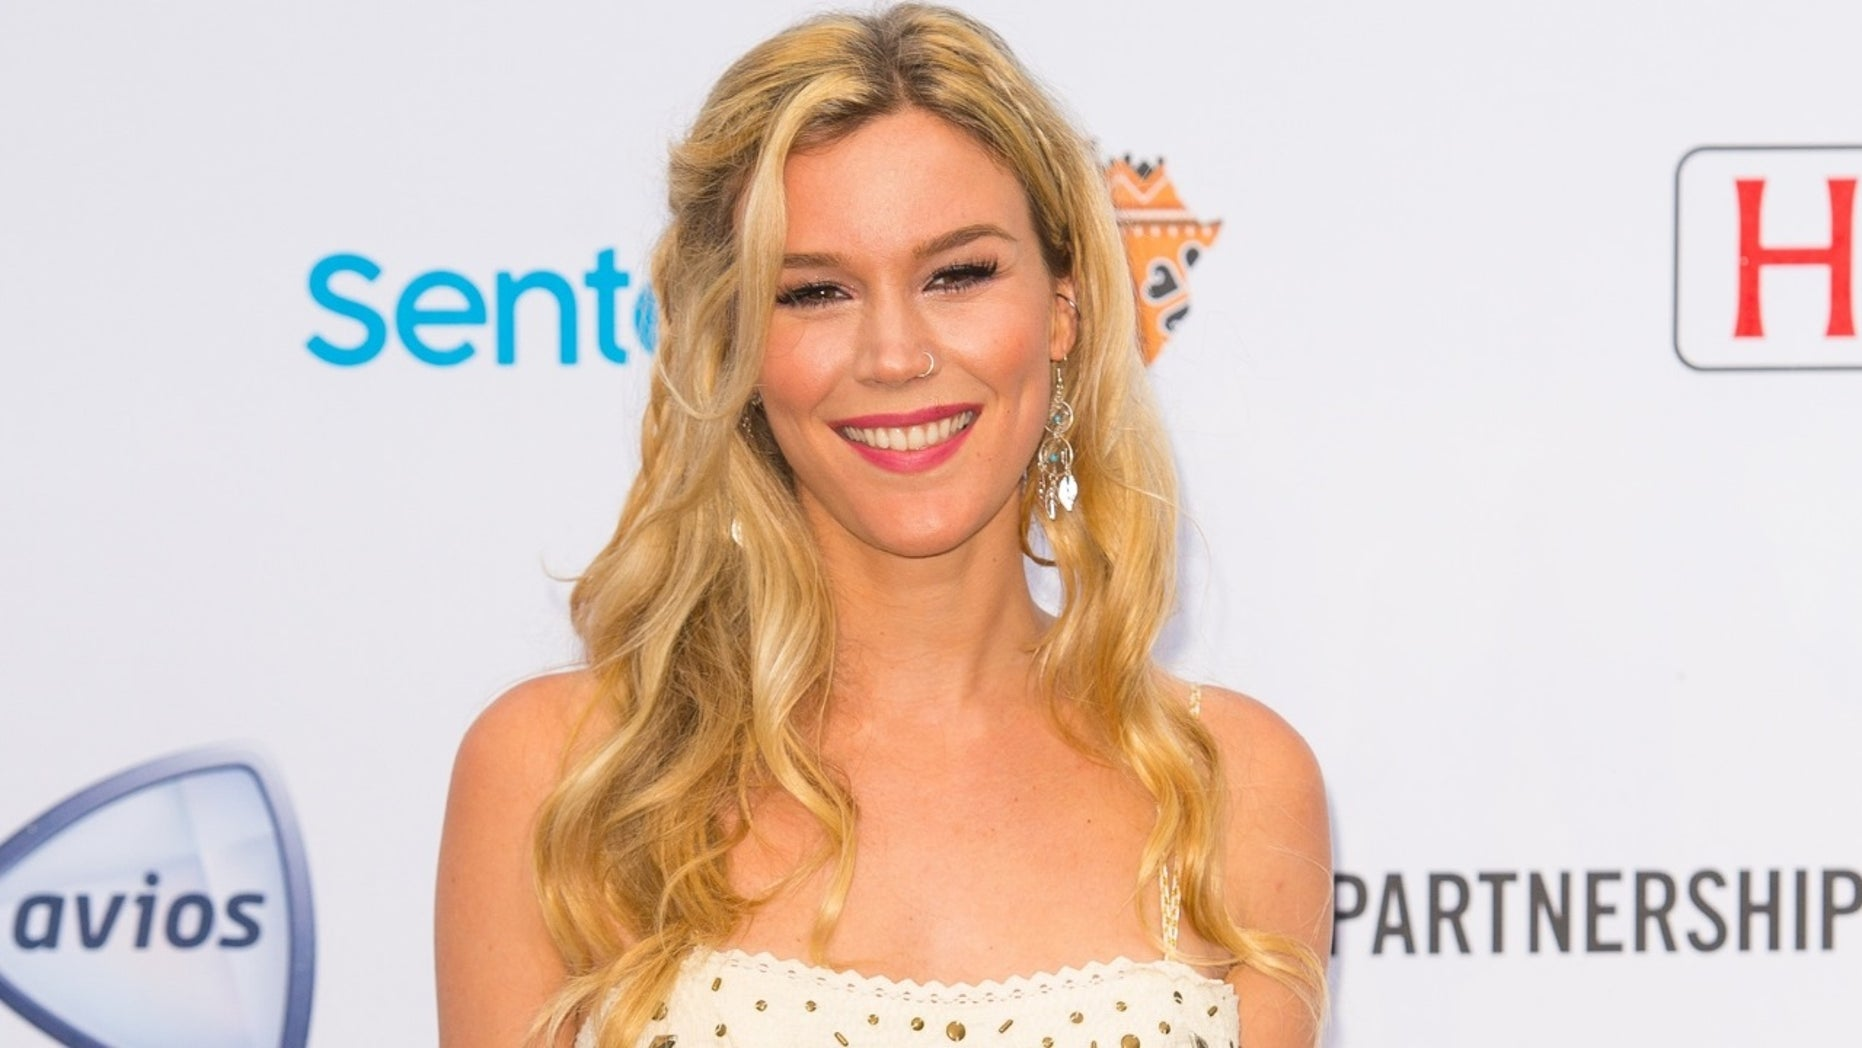 British singer Joss Stone was spotted performing at a bar in North Korea as part of her Total World Tour.